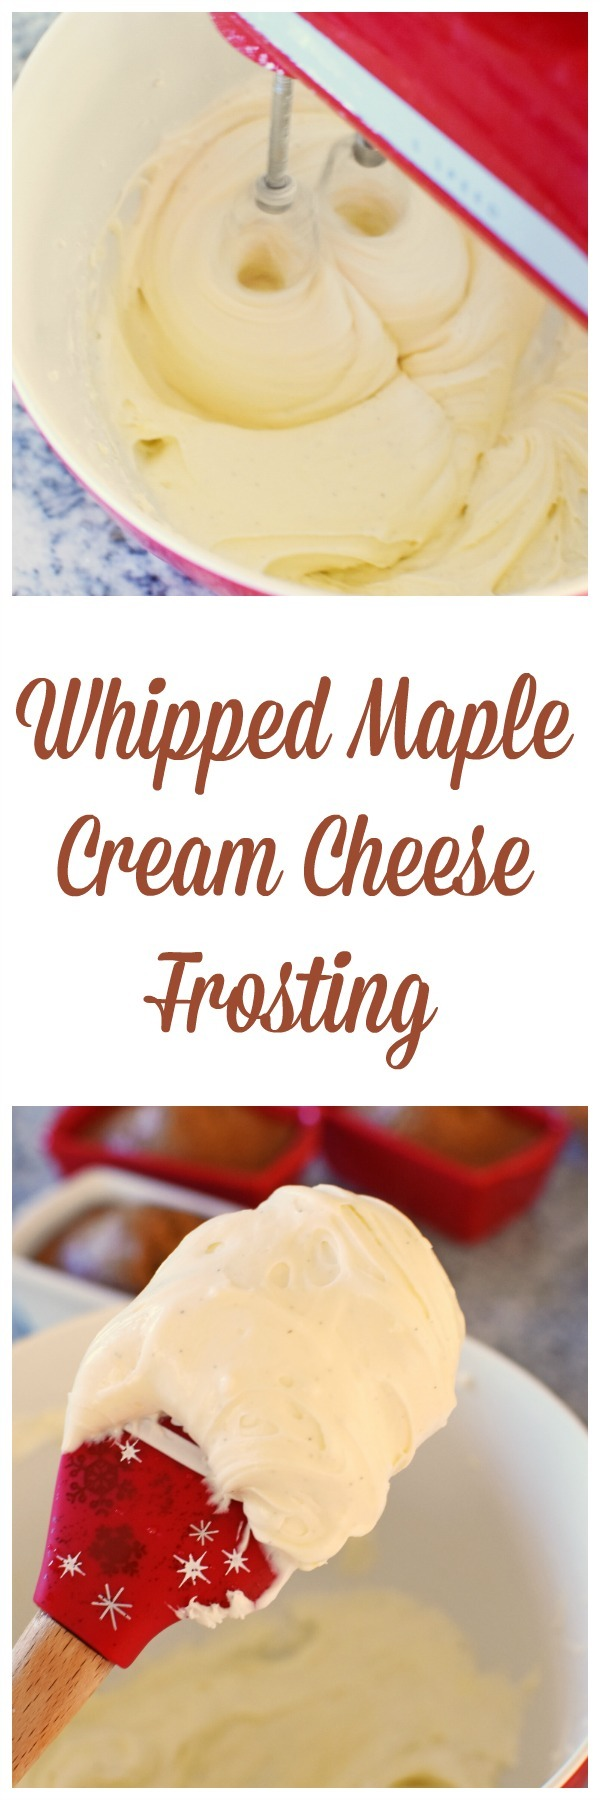 Whipped Maple Cream Cheese Frosting